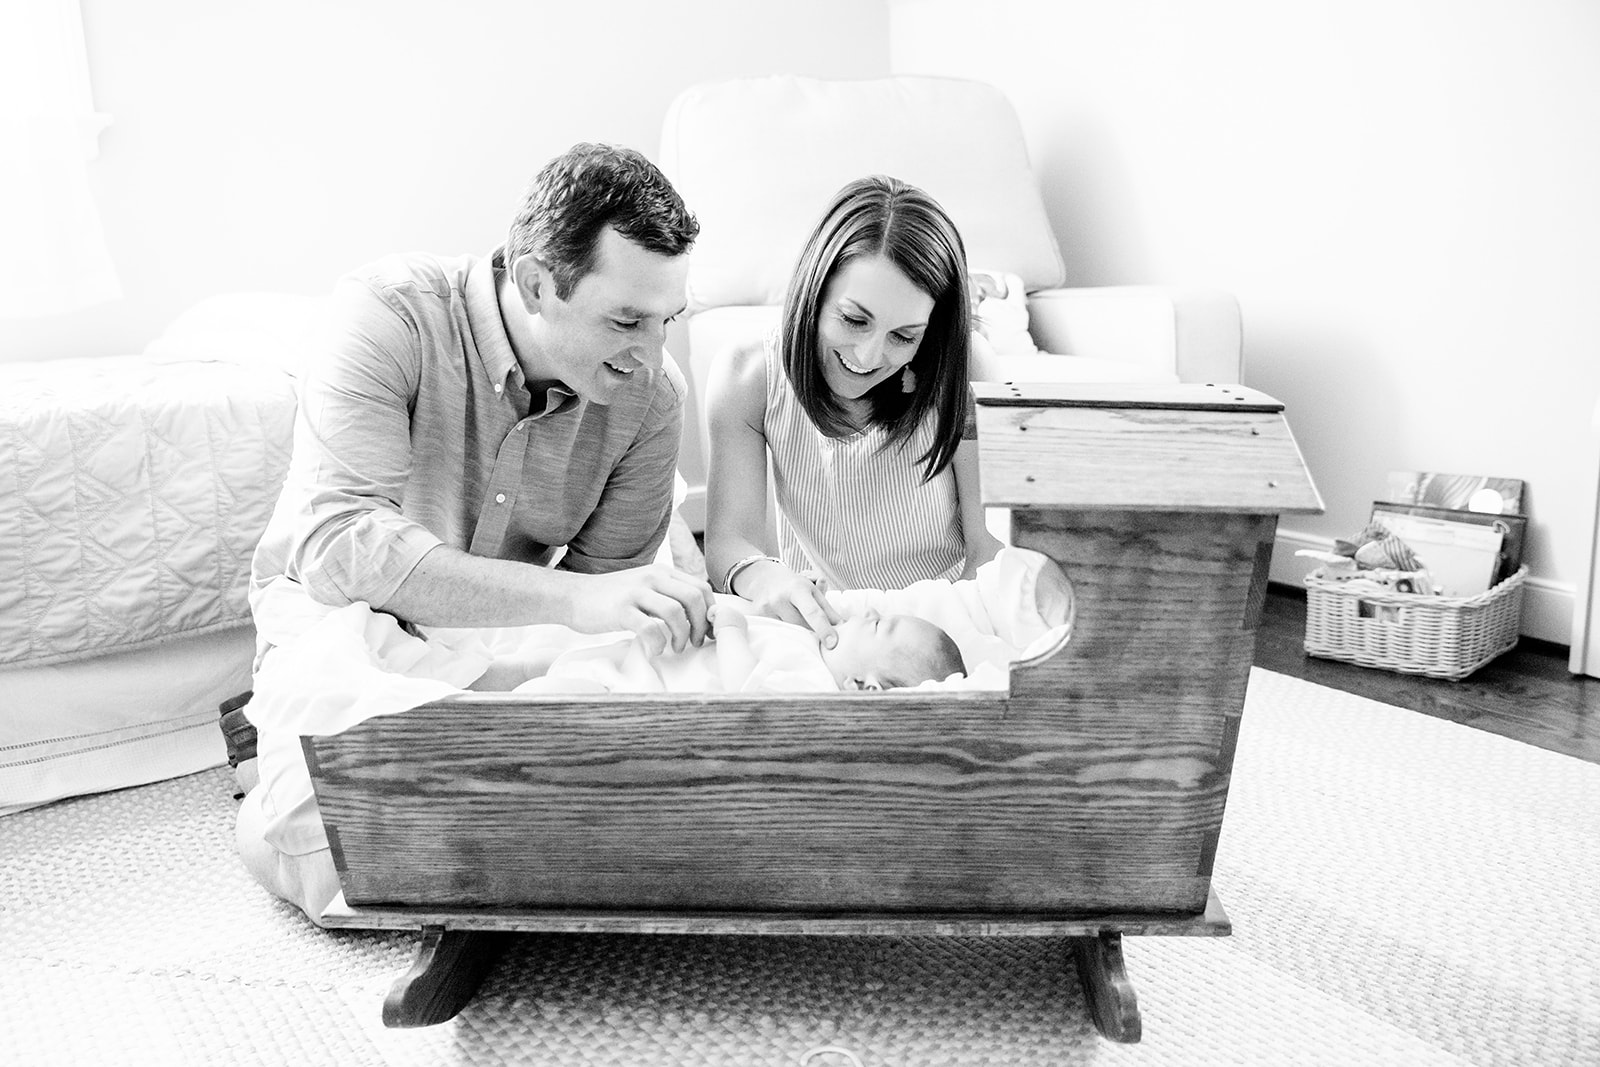 Baby Guilds Lifestyle Newborn Shoot - Image Property of www.j-dphoto.com